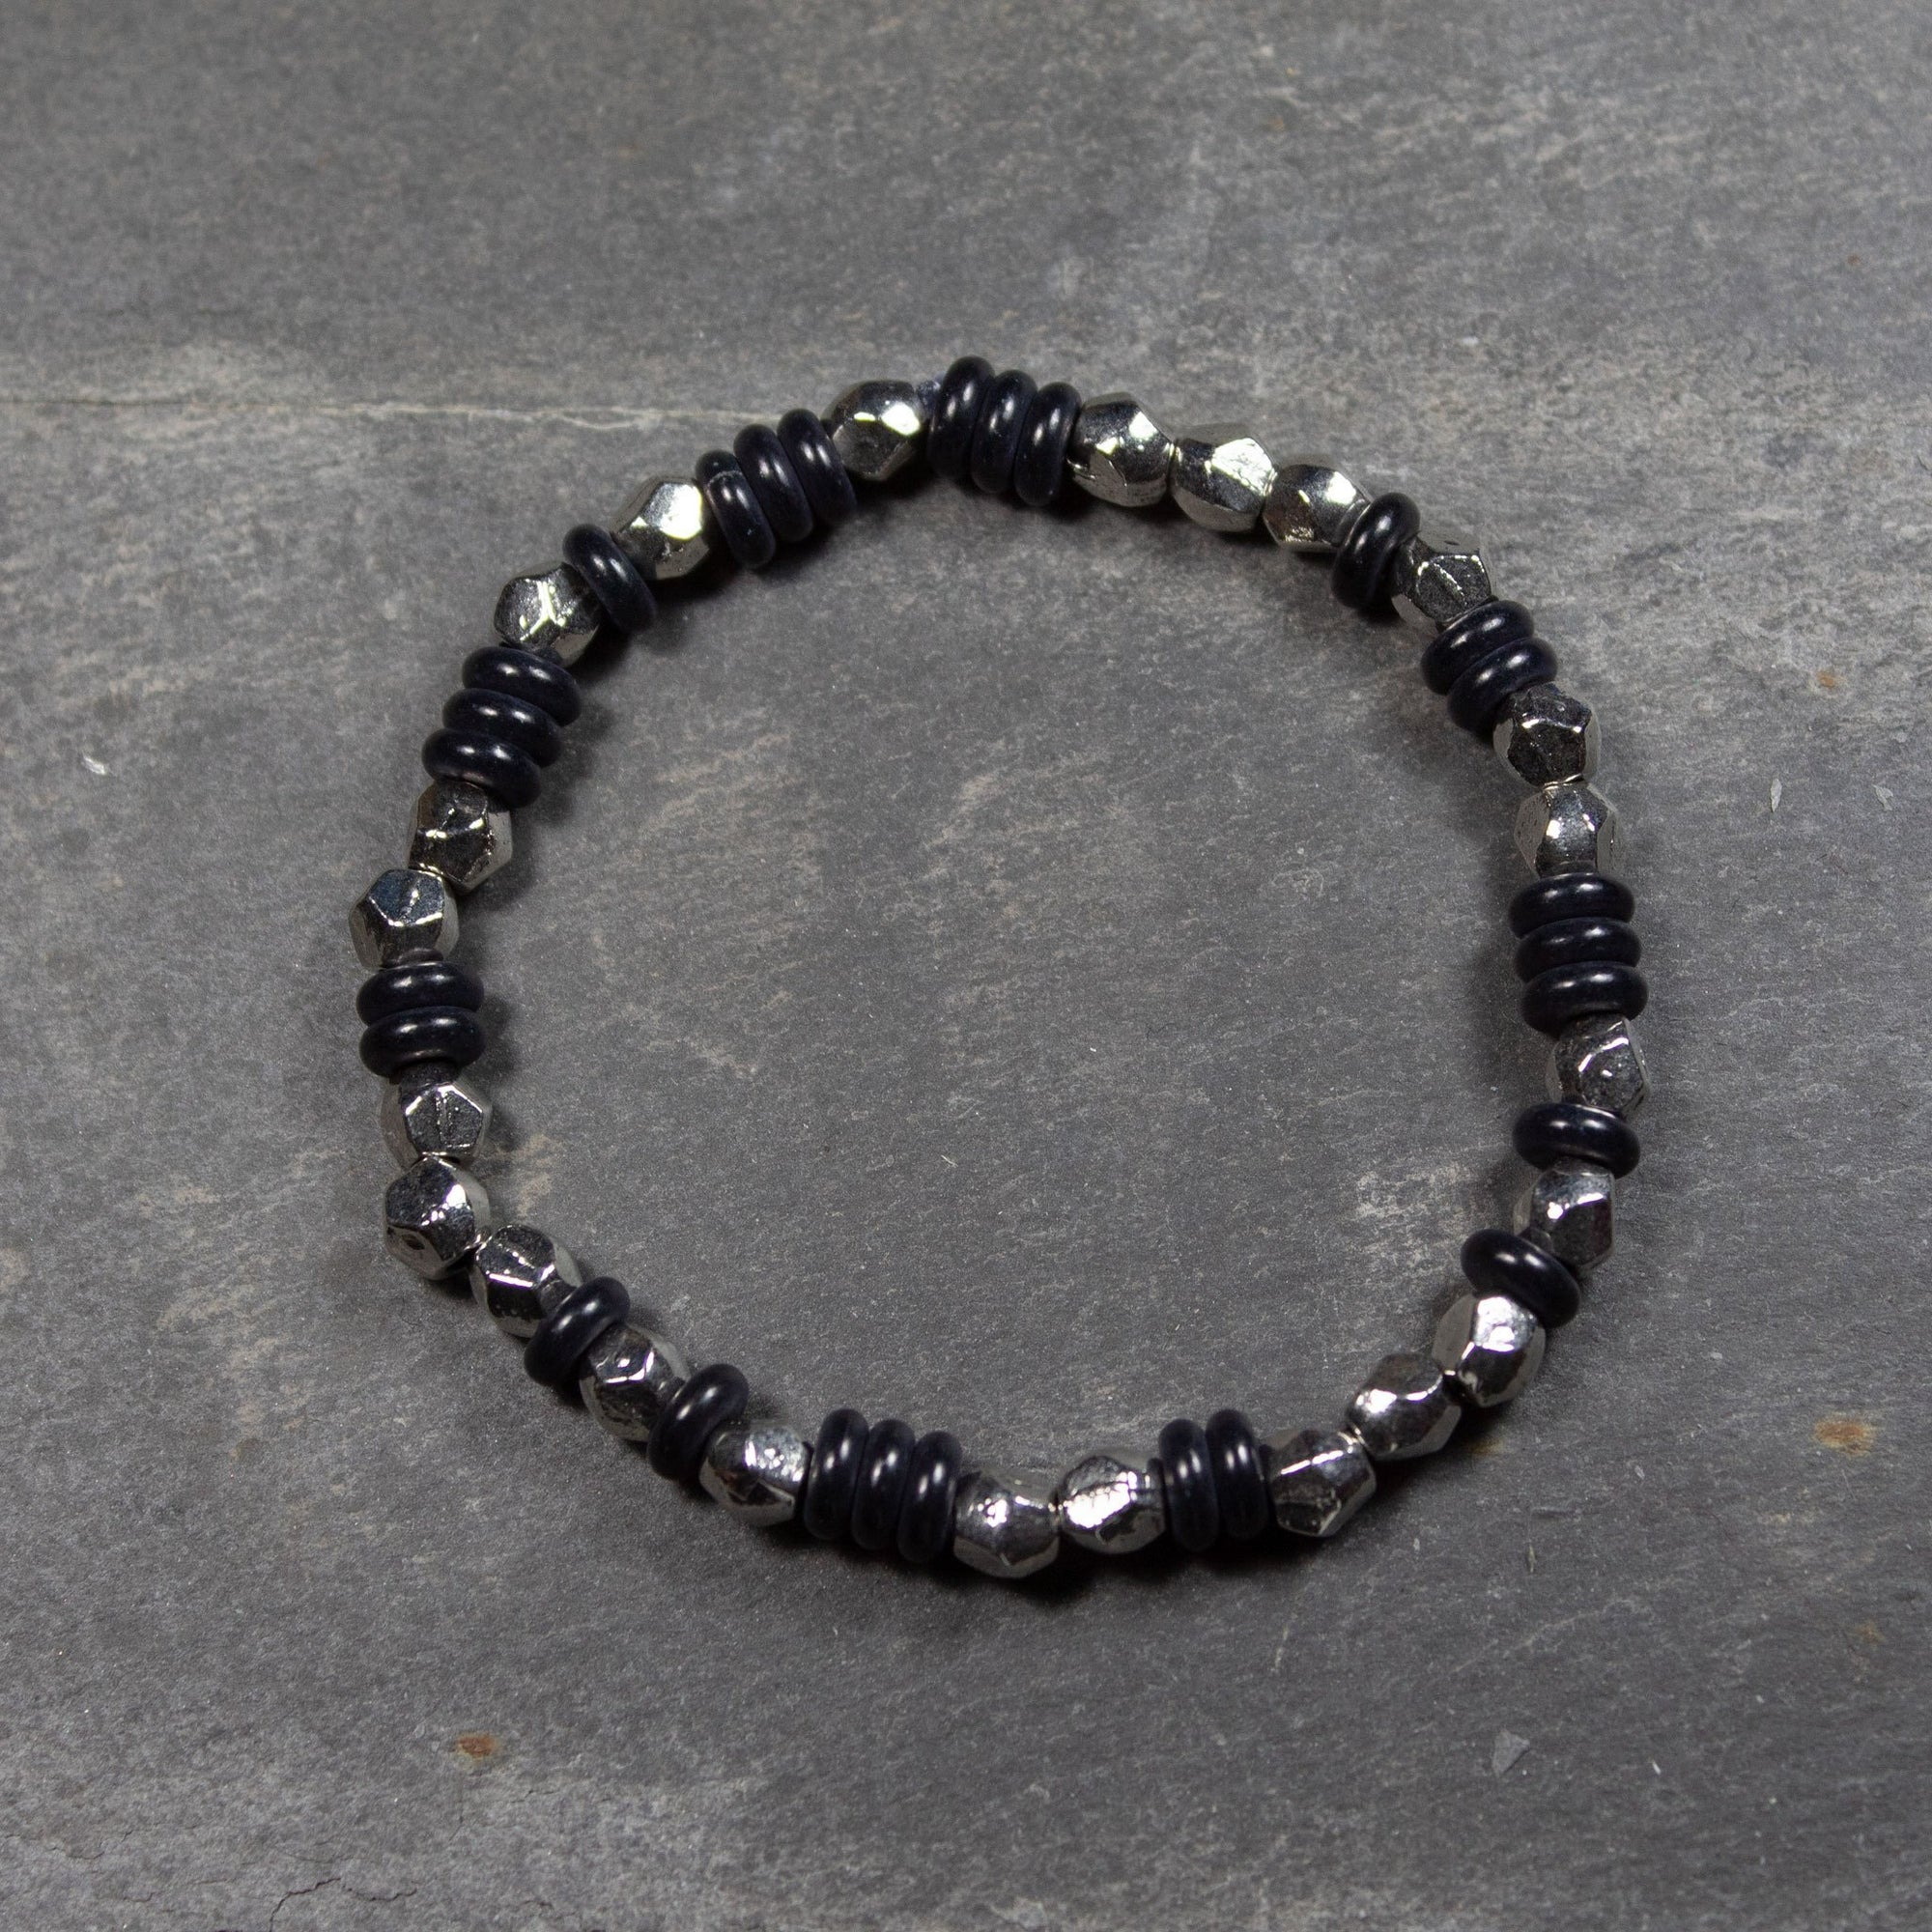 Black Stone Disc & Geometric Metal Bead Bracelet | Bracelet - The Naughty Shrew